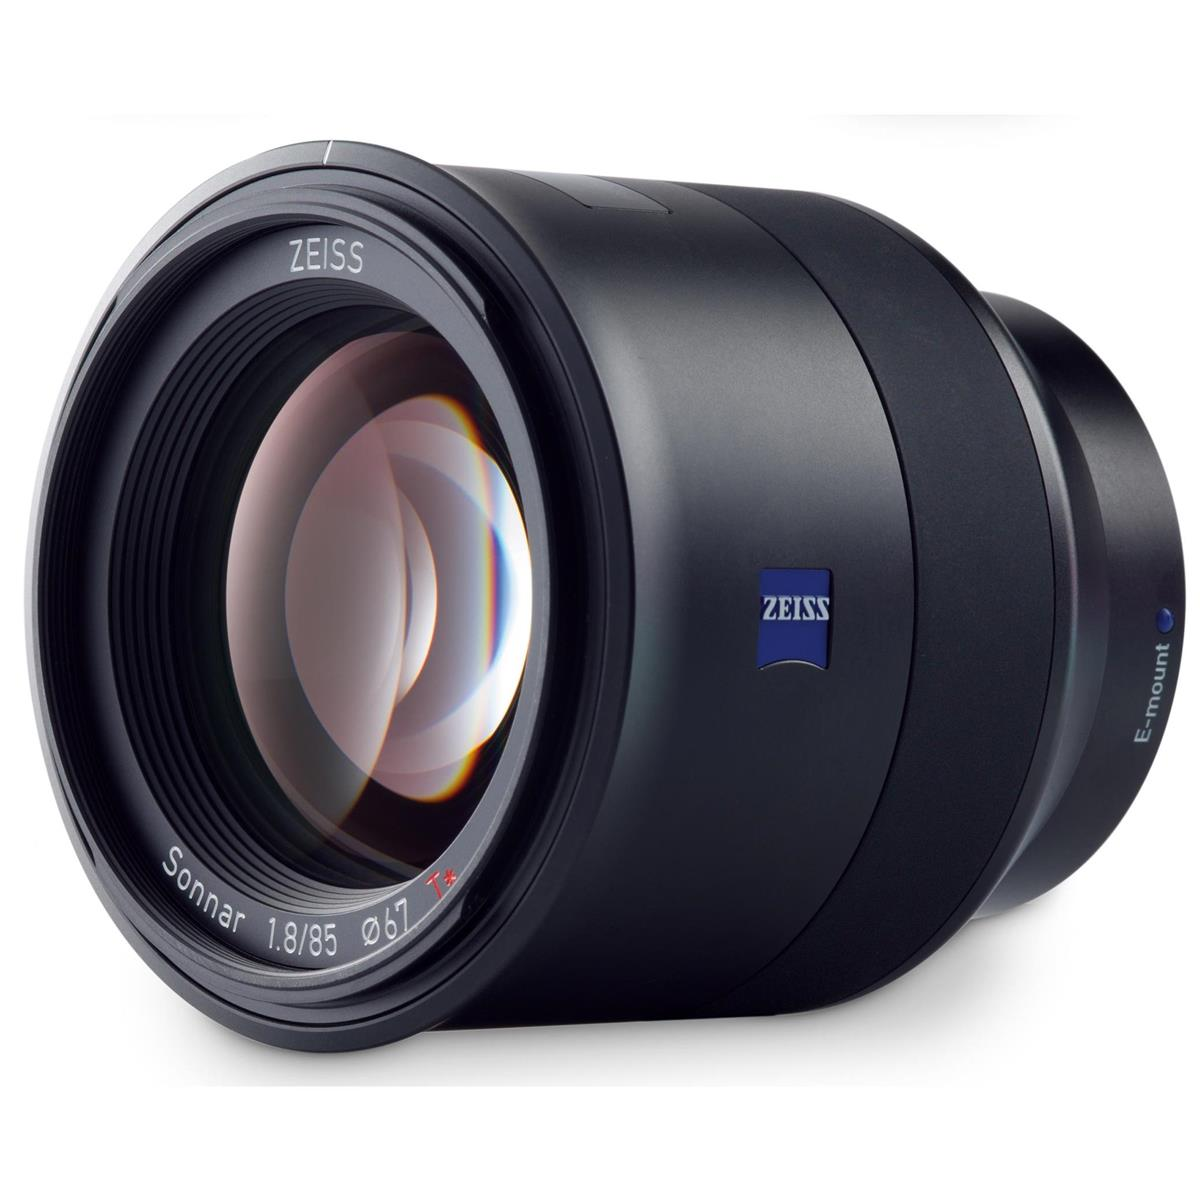 Zeiss Batis 85mm f/1.8 (FE) - this was Jason's favorite portrait lens before he started using the 85mm G Master. This is an excellent lens for the price and offers a more affordable, high end professional native lens option for Sony users. It also is a fantastic lens for video purposes.